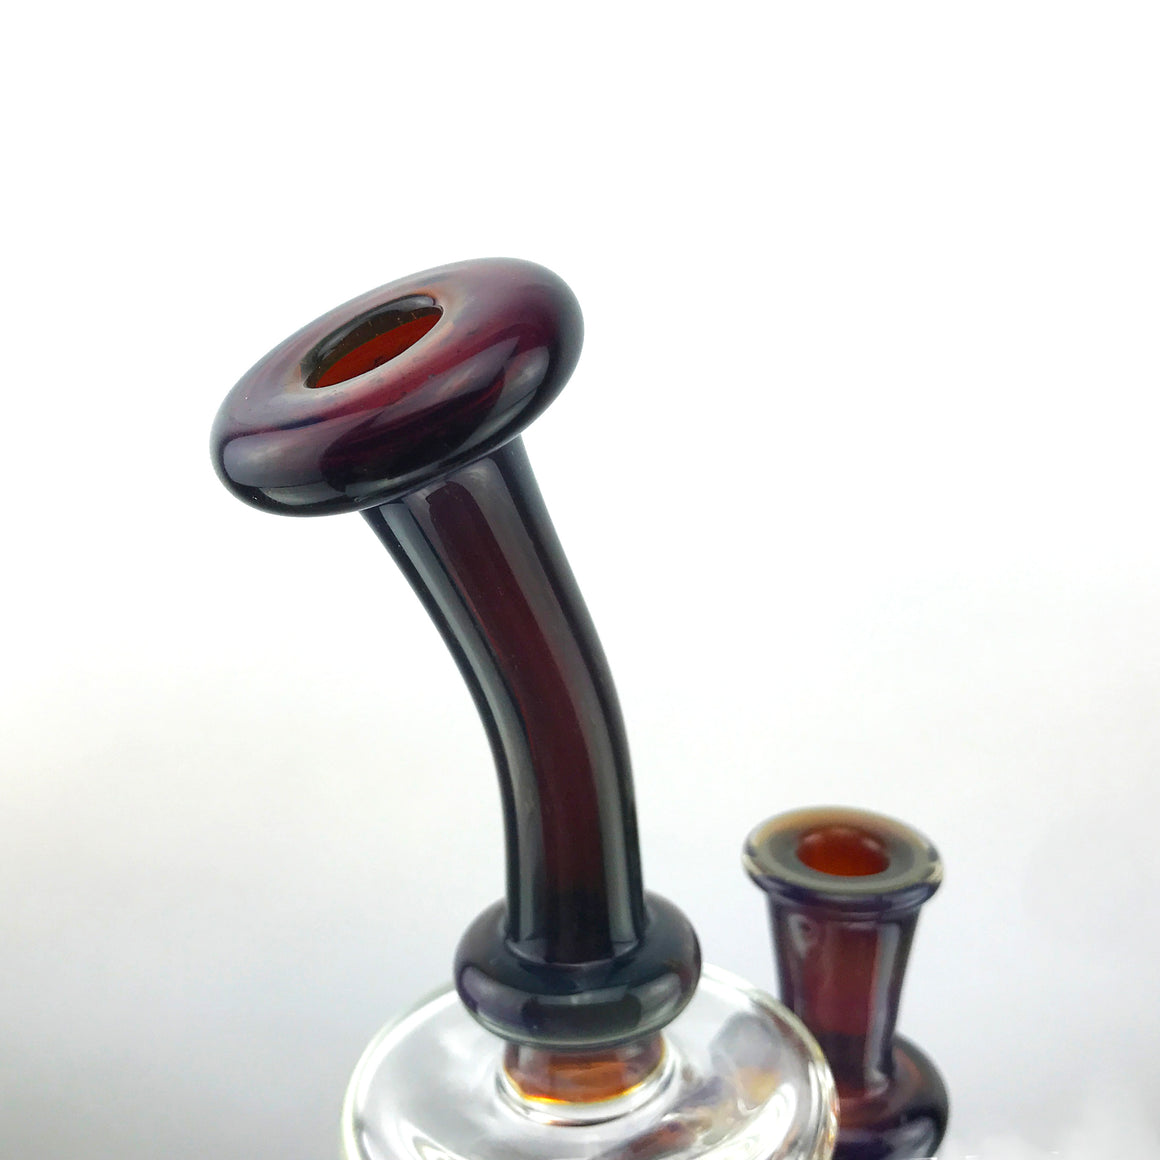 Reinforced Perc Rig - Deppe's Darkness - 10mm Female